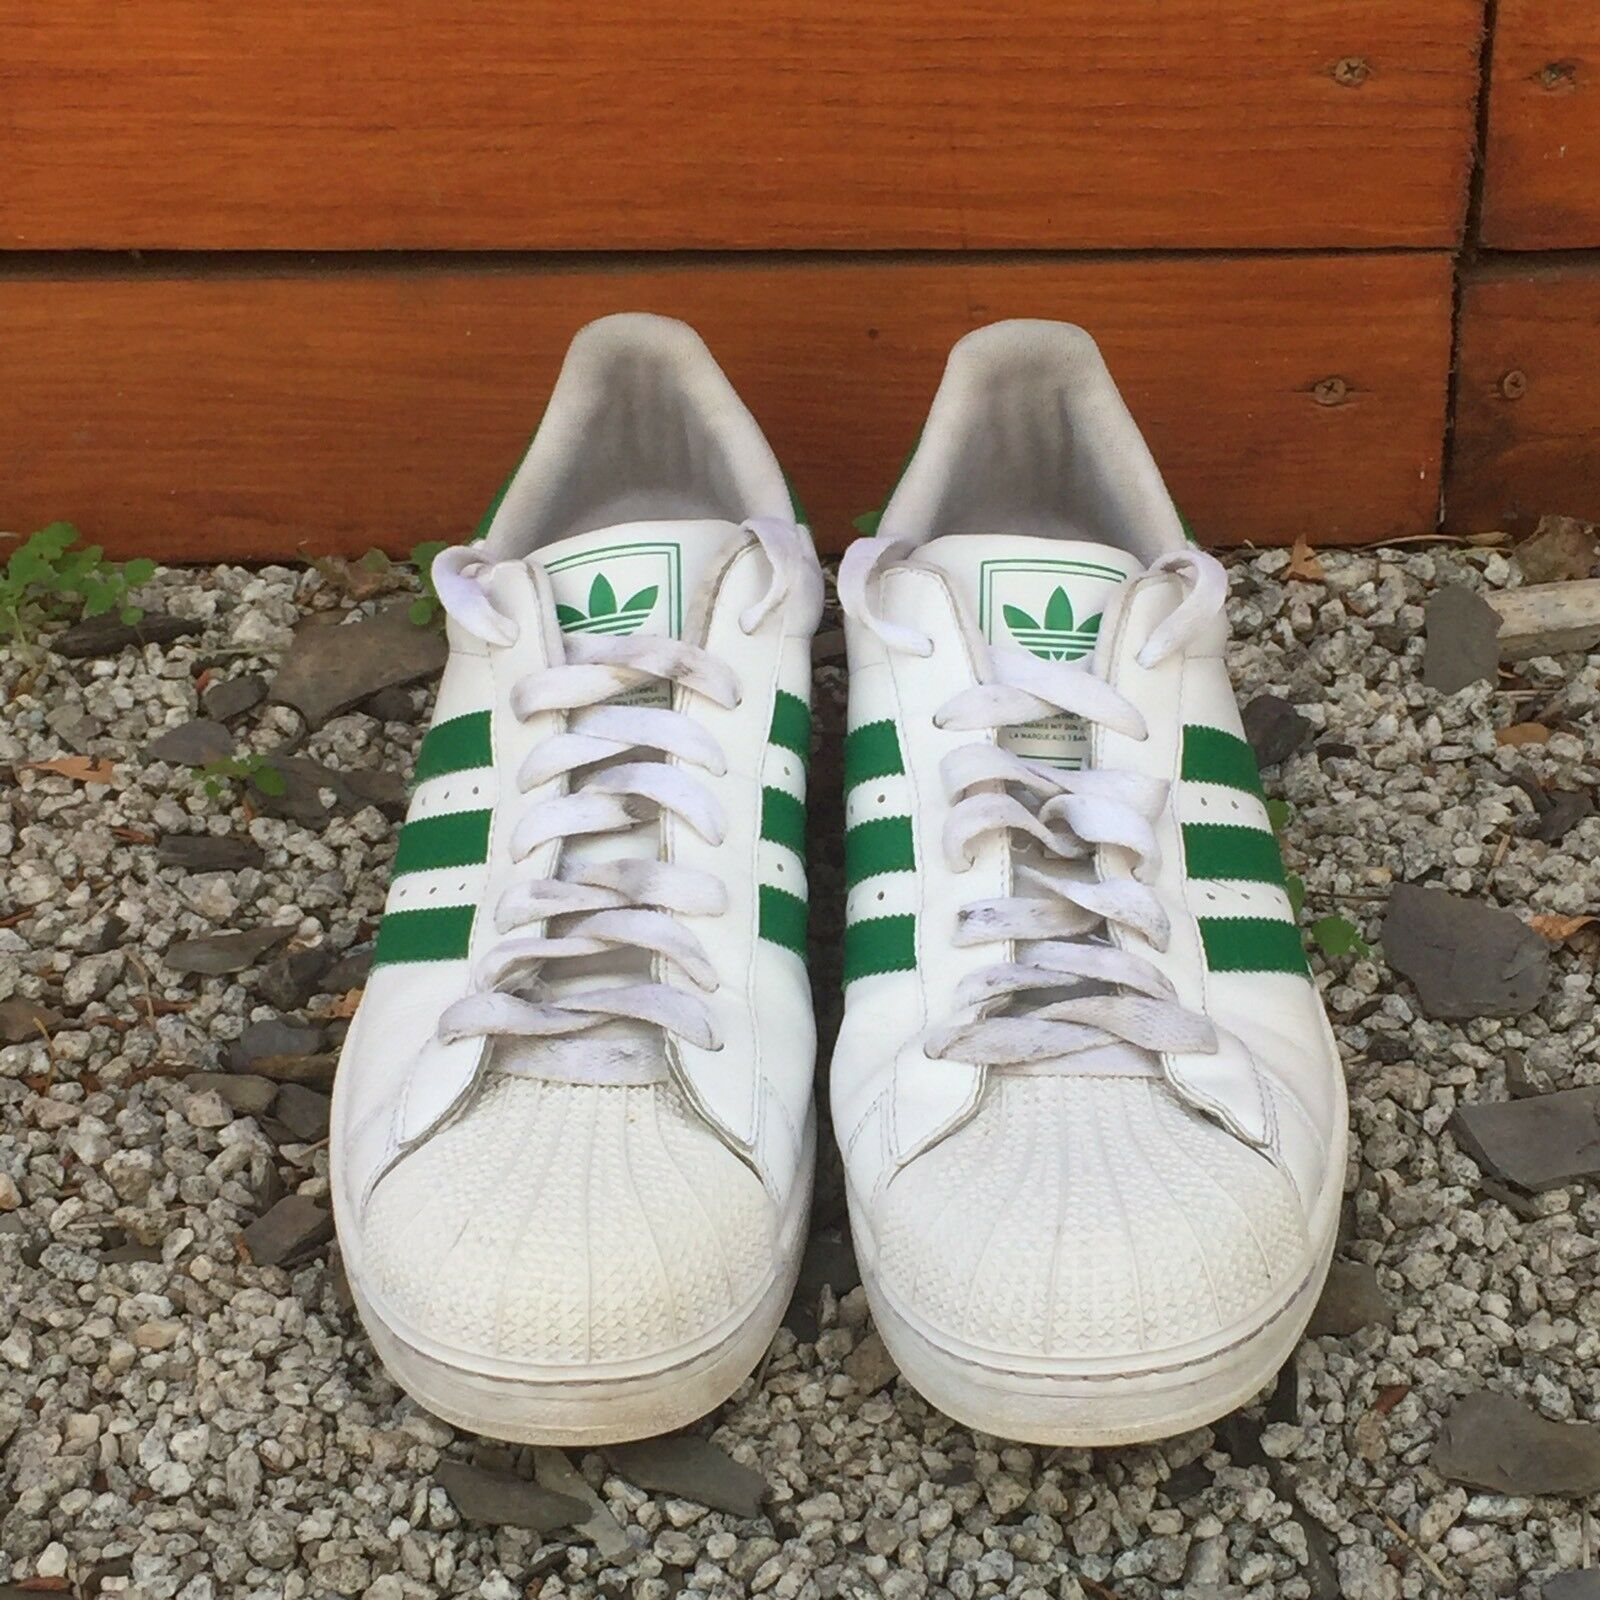 ADIDAS Men's Superstar Original Shell  Toe Sneakers in White/Green, Size13